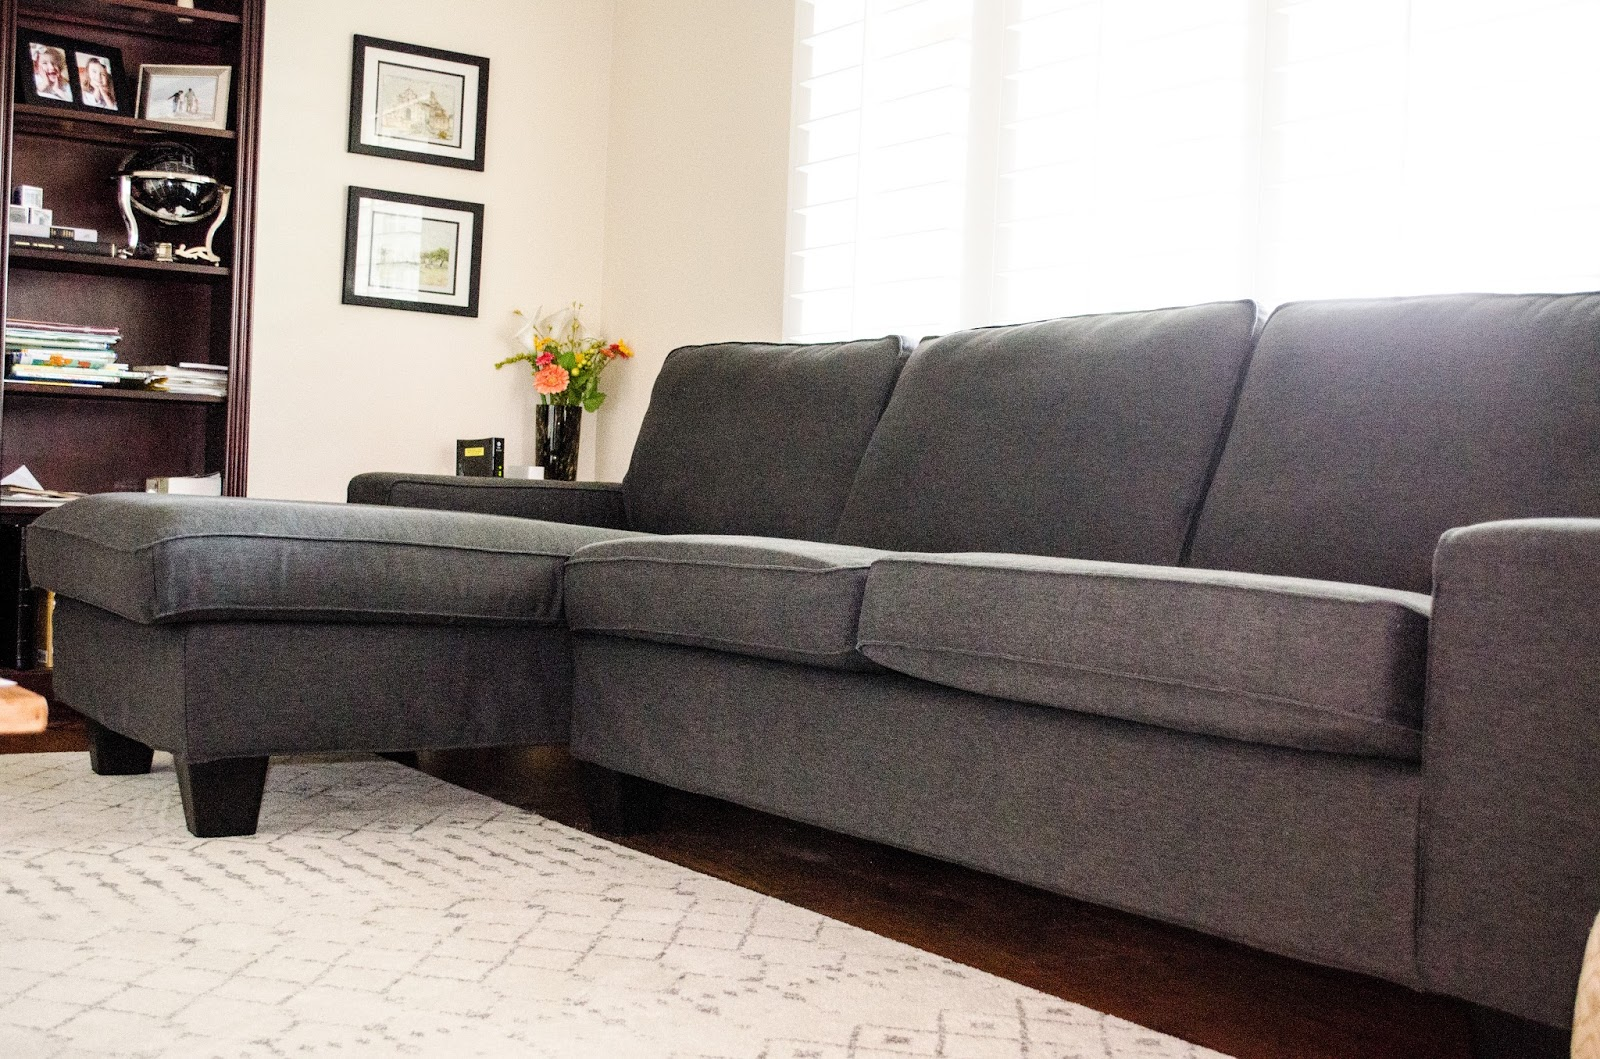 Delightful Snugglebug University The Day My Couch Grew Up An Ikea Kivik  Hack . Raise Sofa